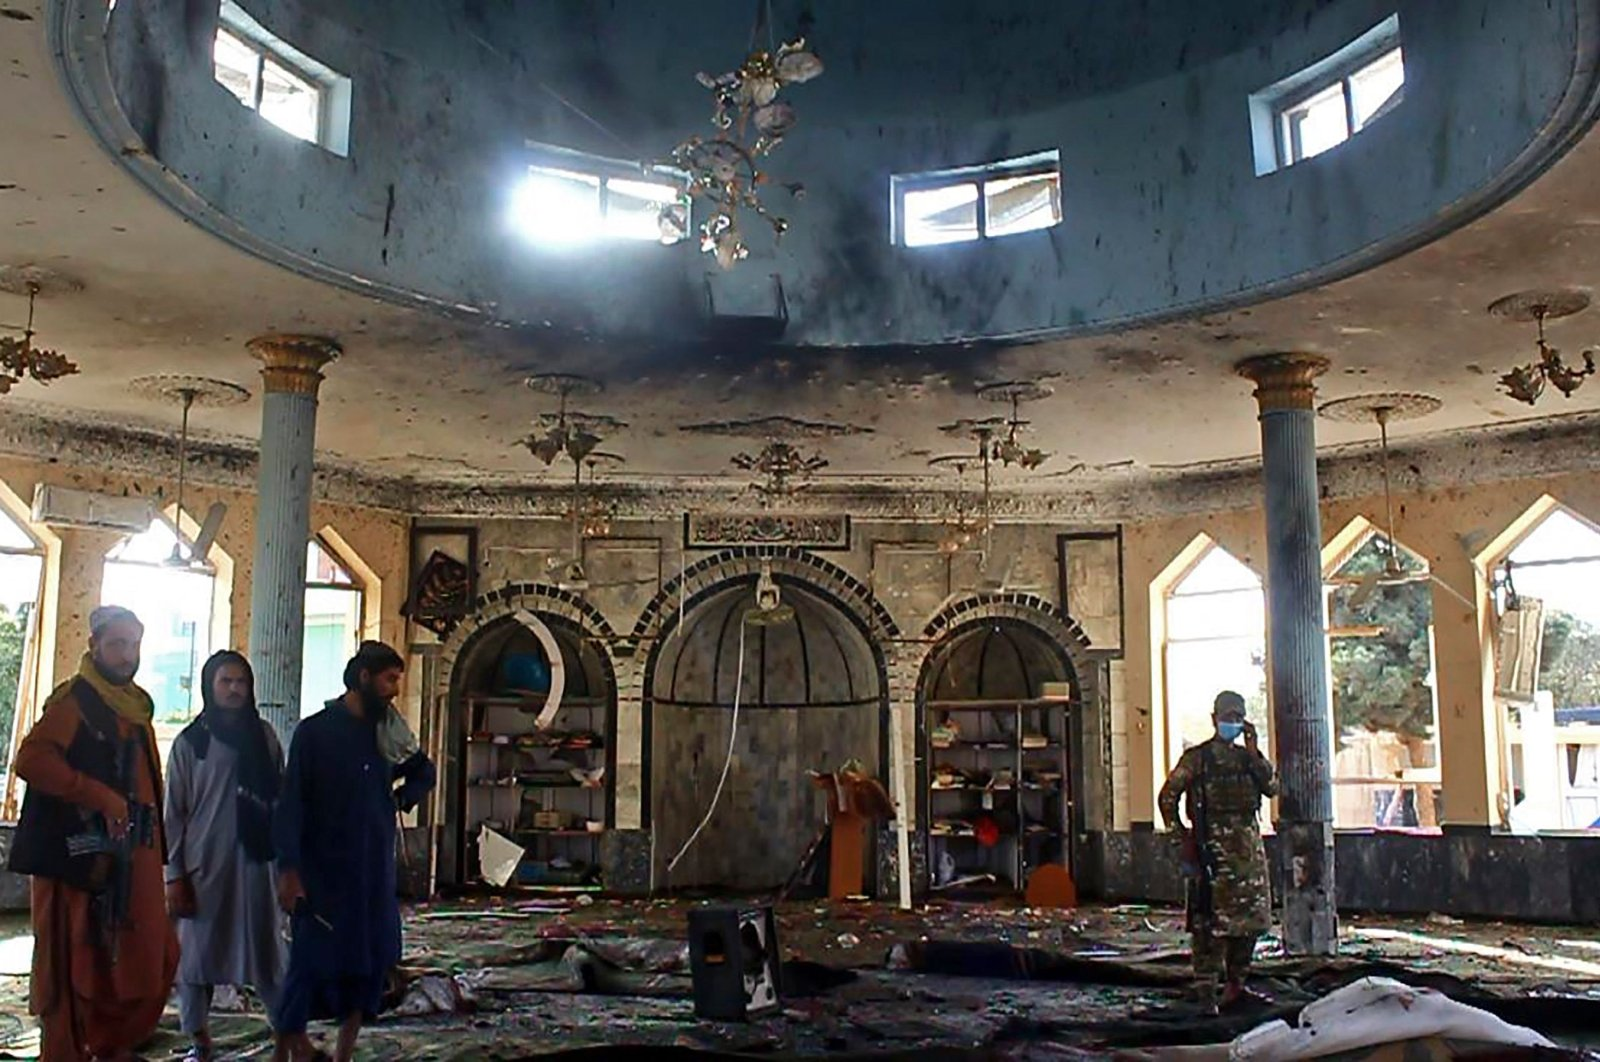 Taliban fighters investigate inside a Shiite mosque after a suicide bomb attack in Kunduz, Oct. 8, 2021. (AFP Photo)